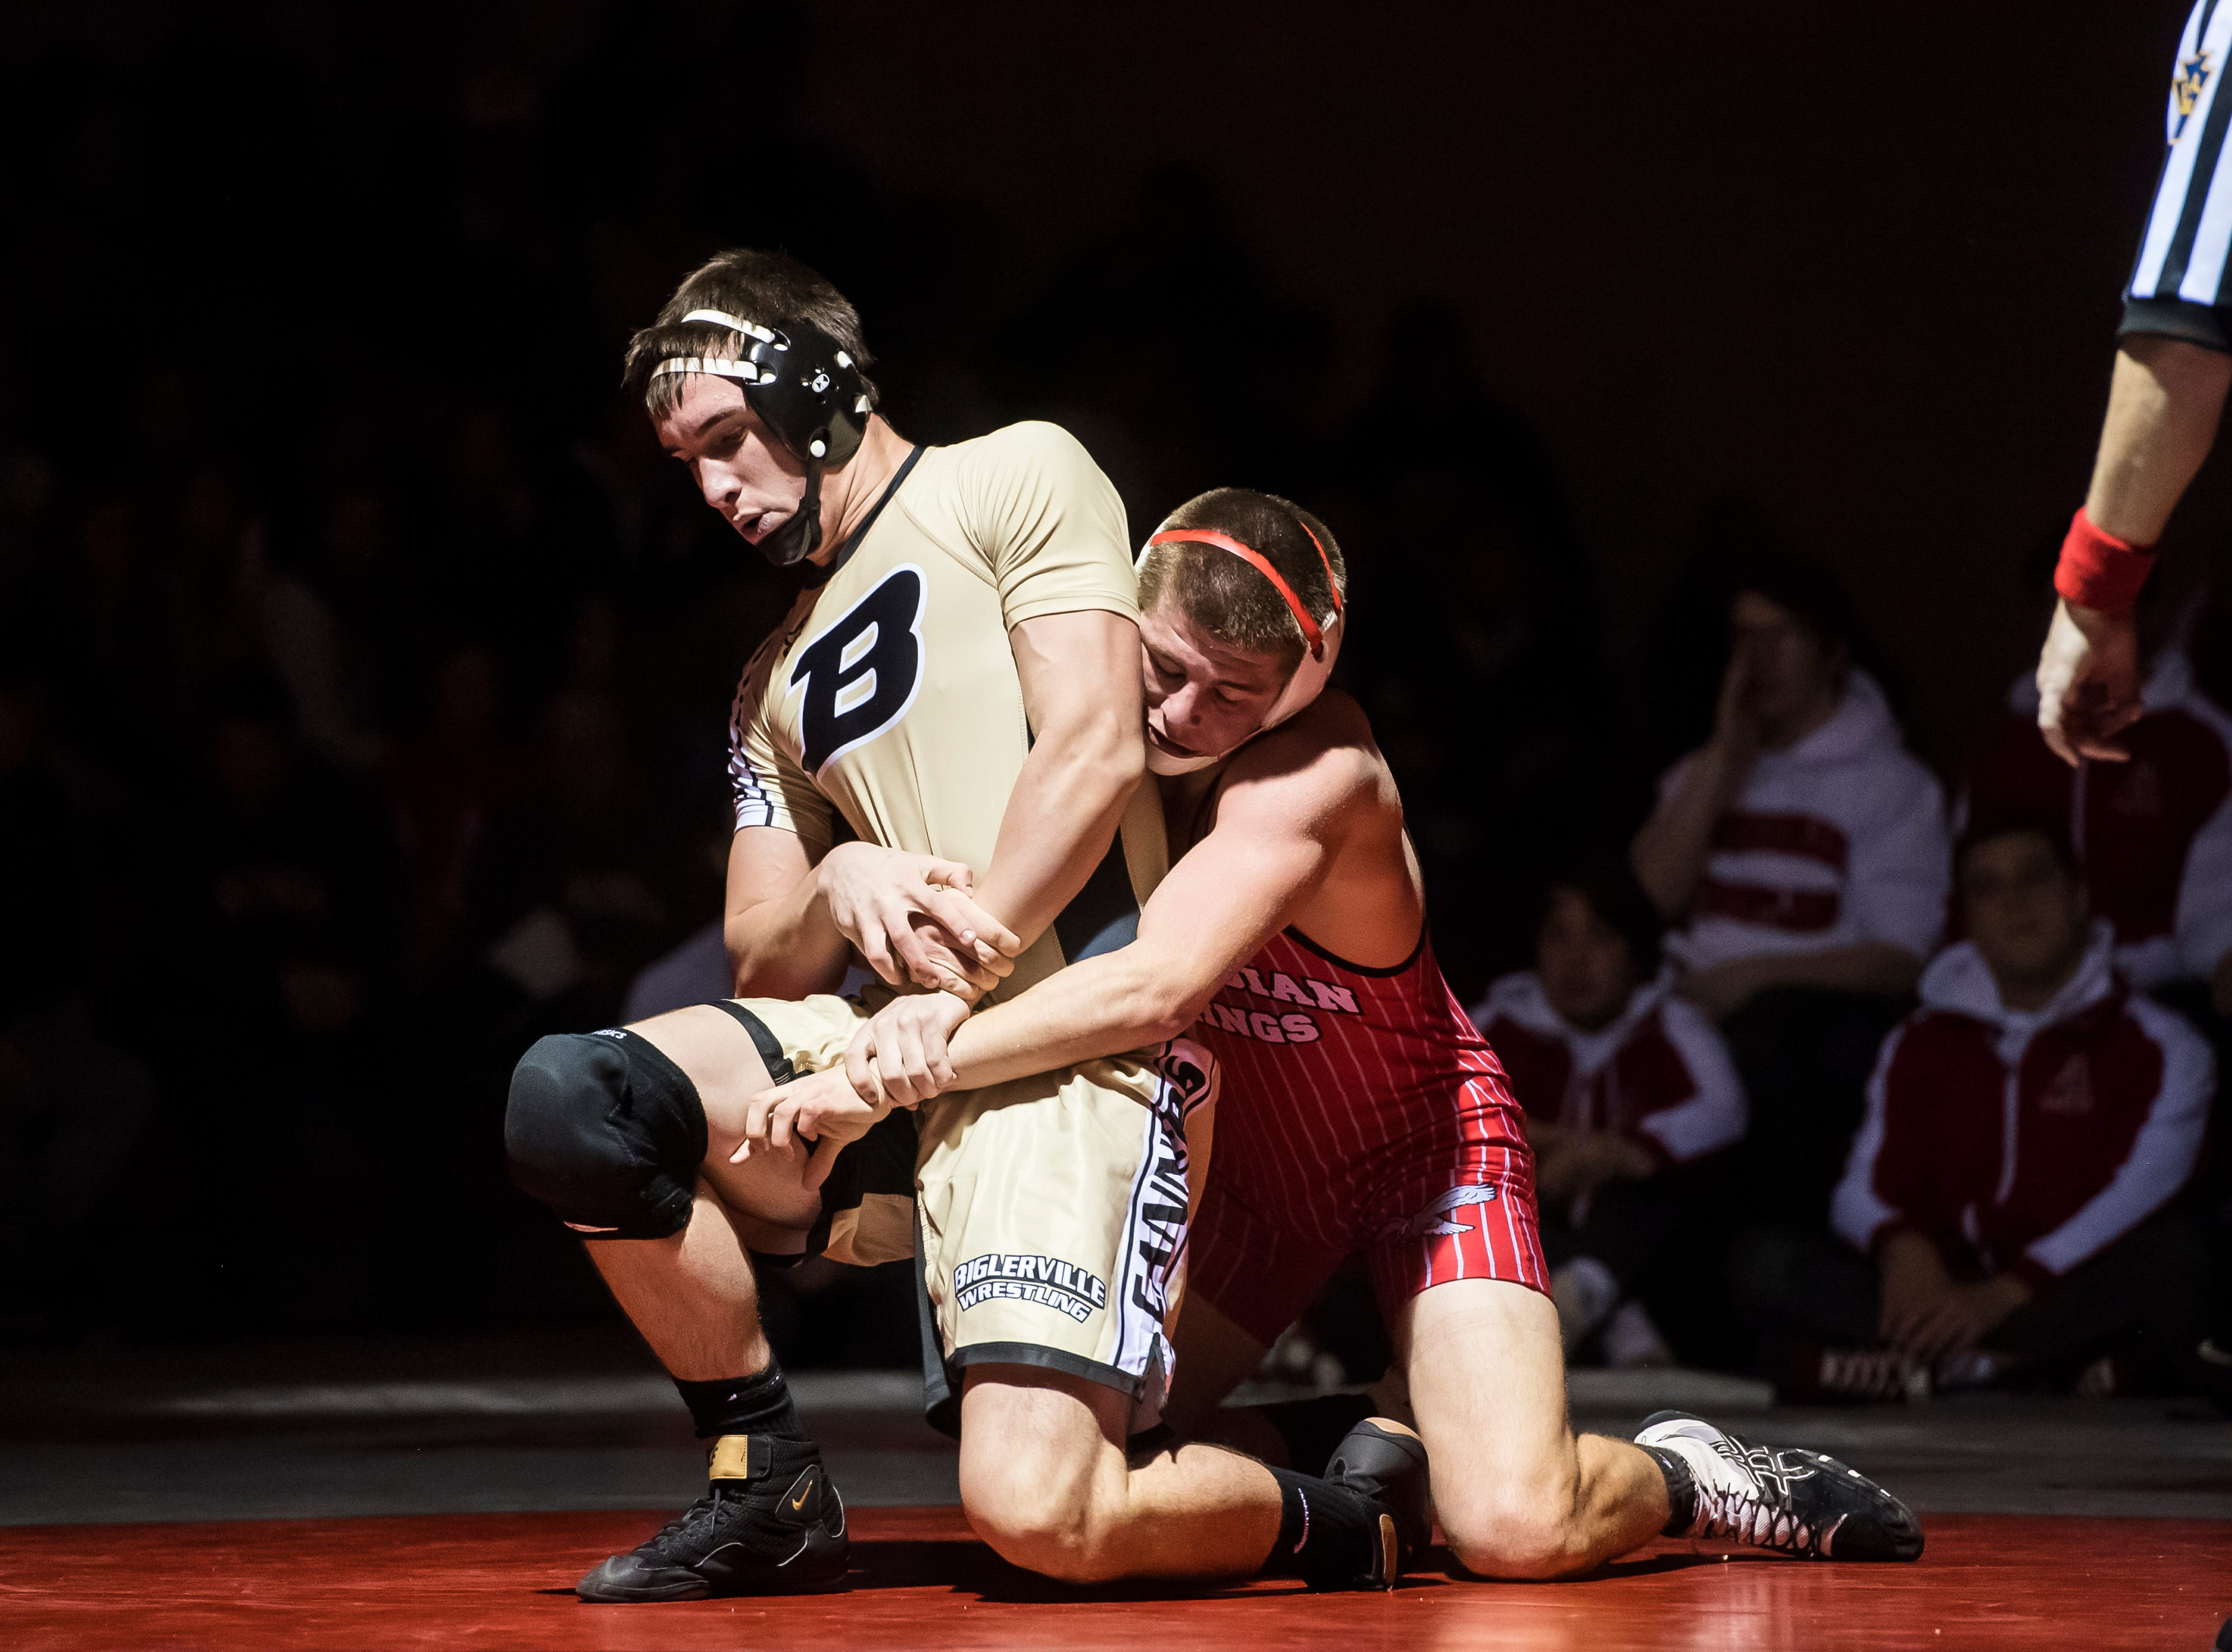 Bermudian Springs' Nate McCollum, right, wrestles Biglerville's Nick Wright in the 195-pound bout at Bermudian Springs High School on December 13, 2018. McCollum won by fall and the Eagles won, 51-27.